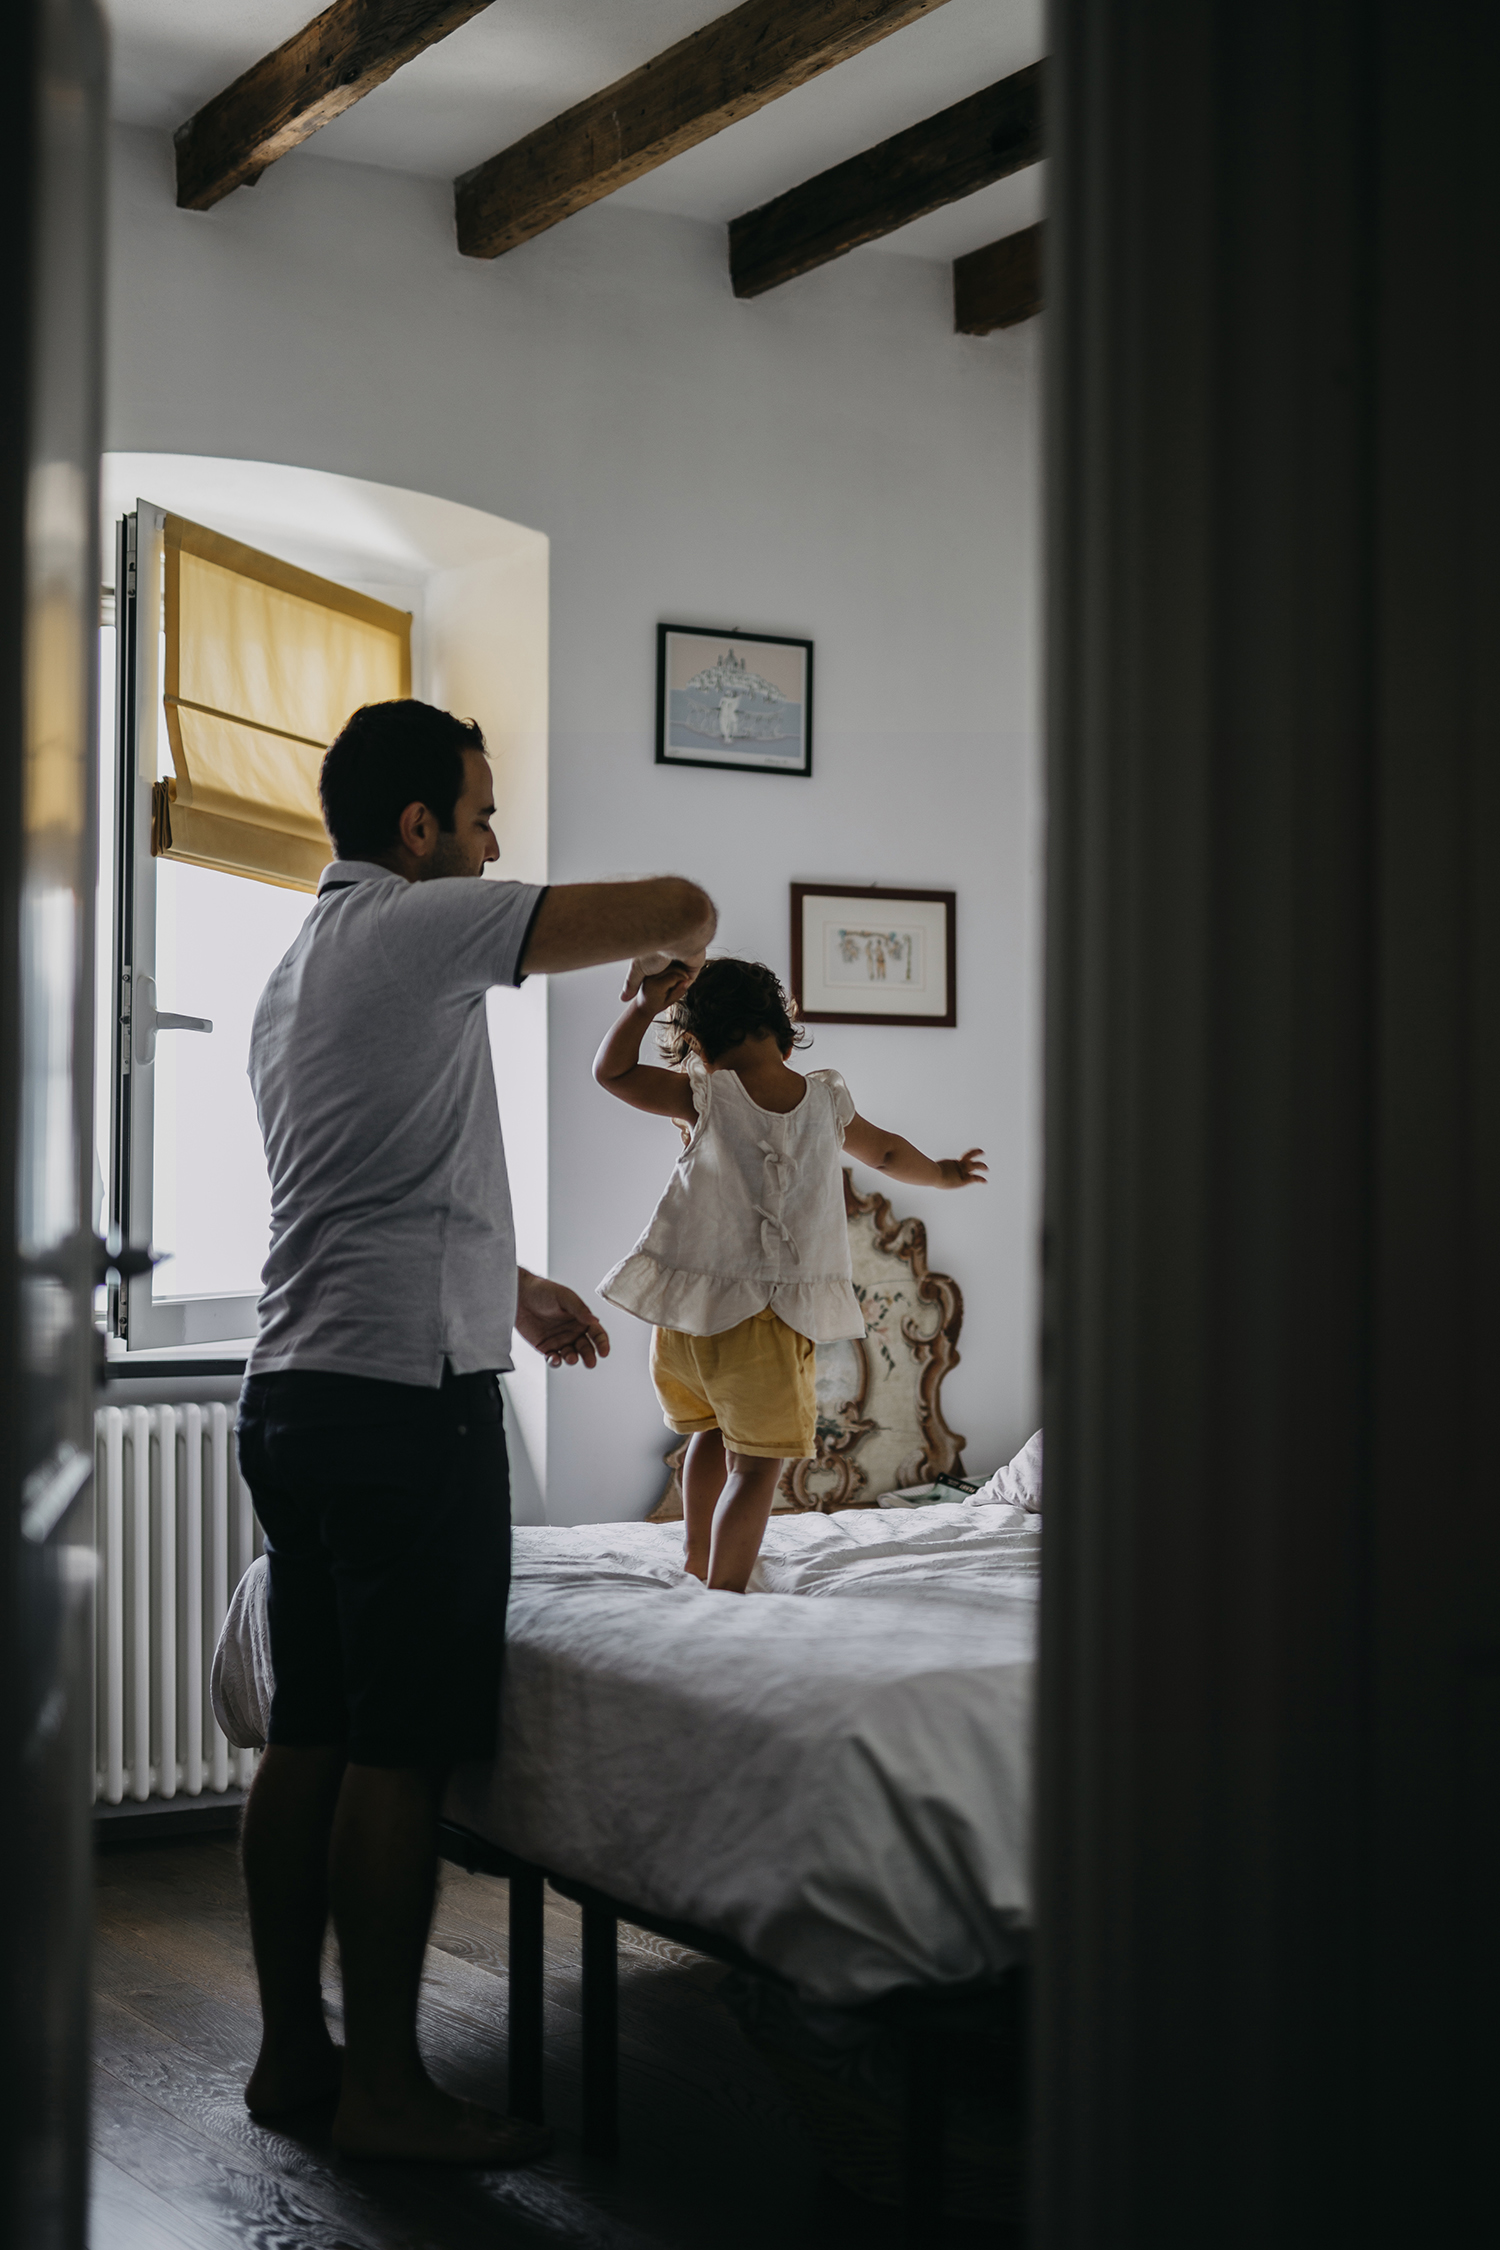 rebecca rinaldi photography. family dad and girl plating on the bed.